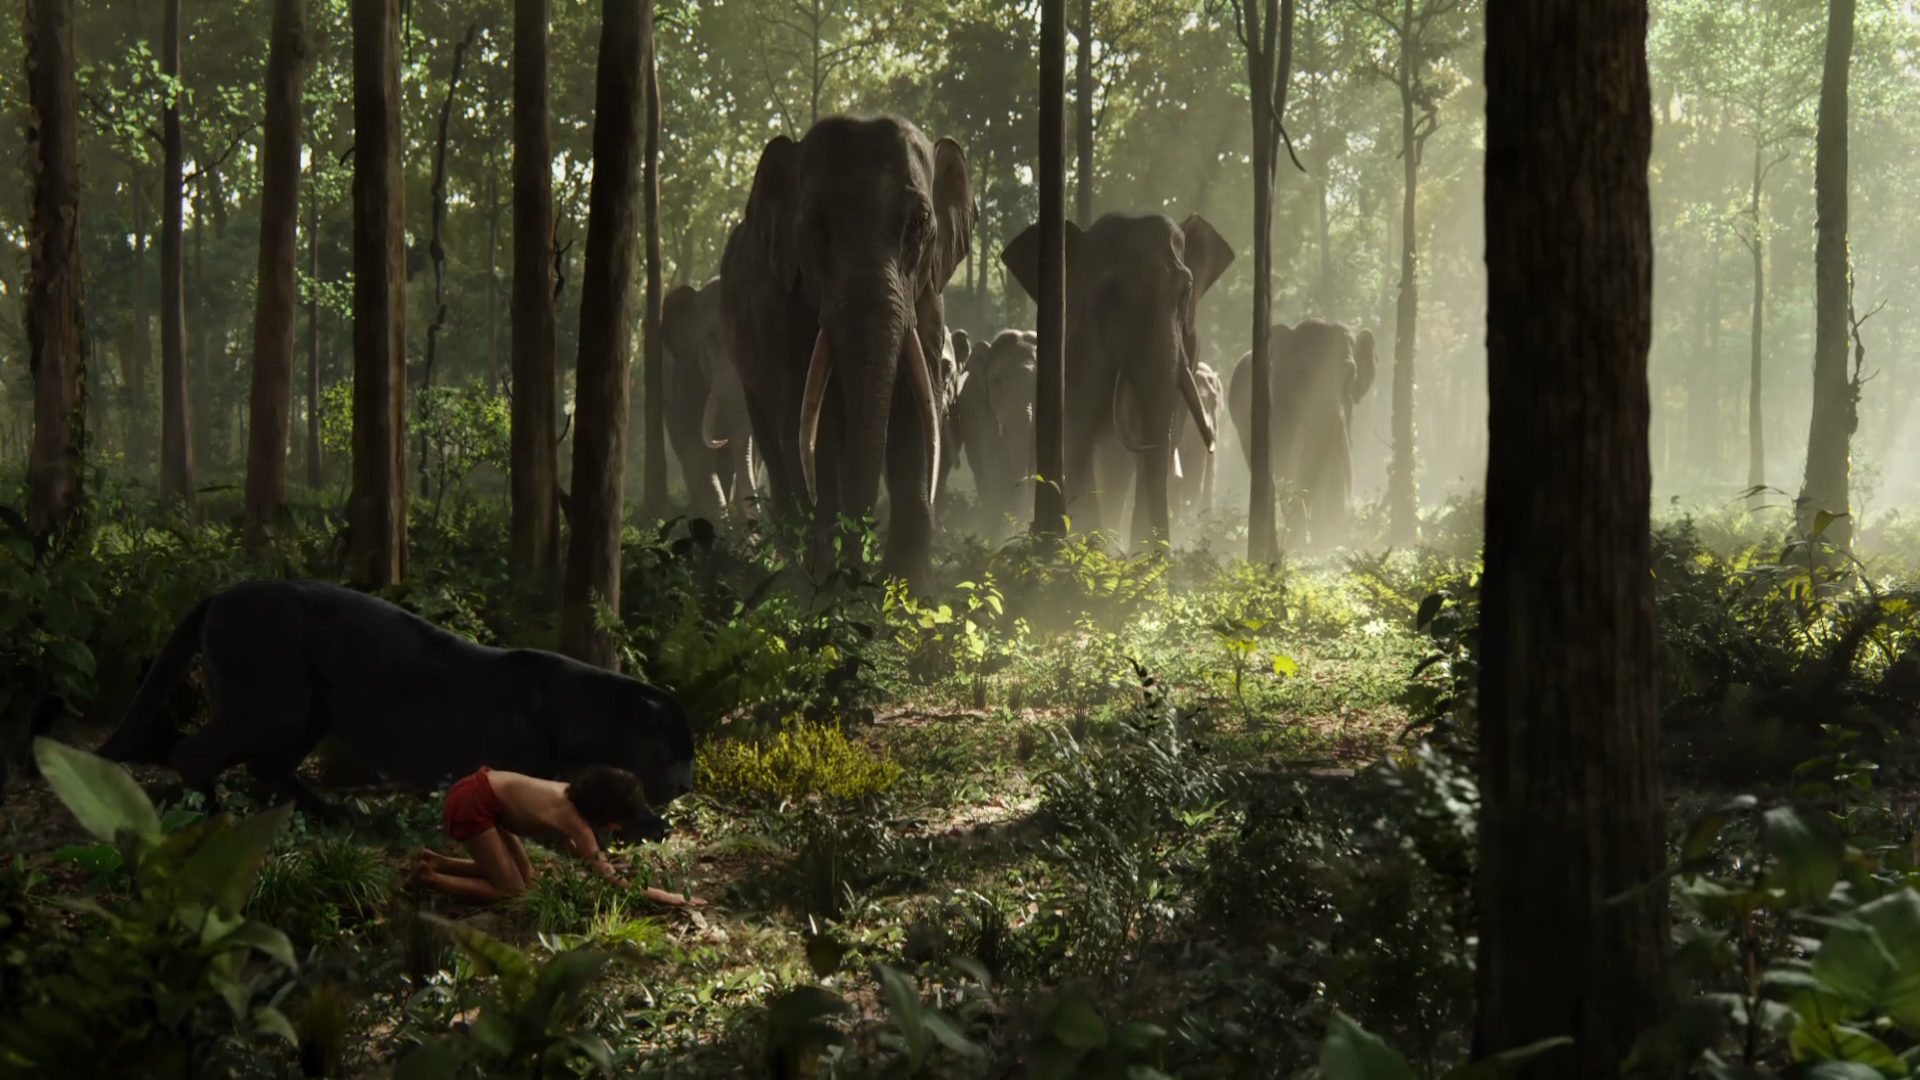 The Jungle Book Wallpapers 1920x1080 px | B.SCB WP&BG Collection